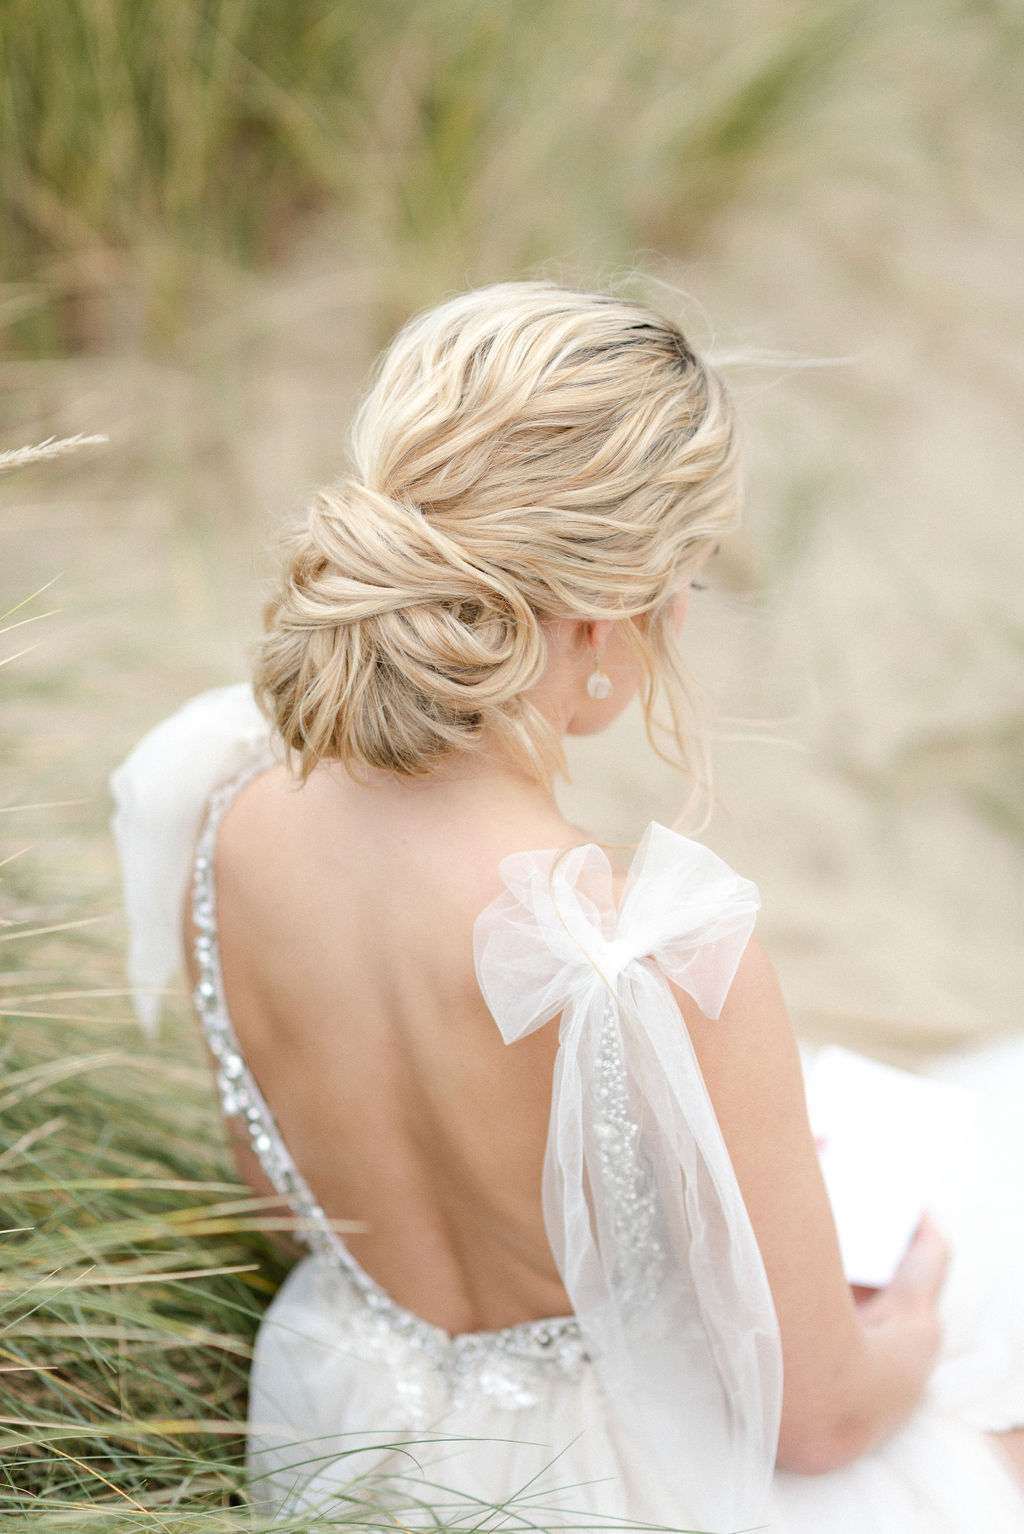 Seasidebridaleditorial_2019_033